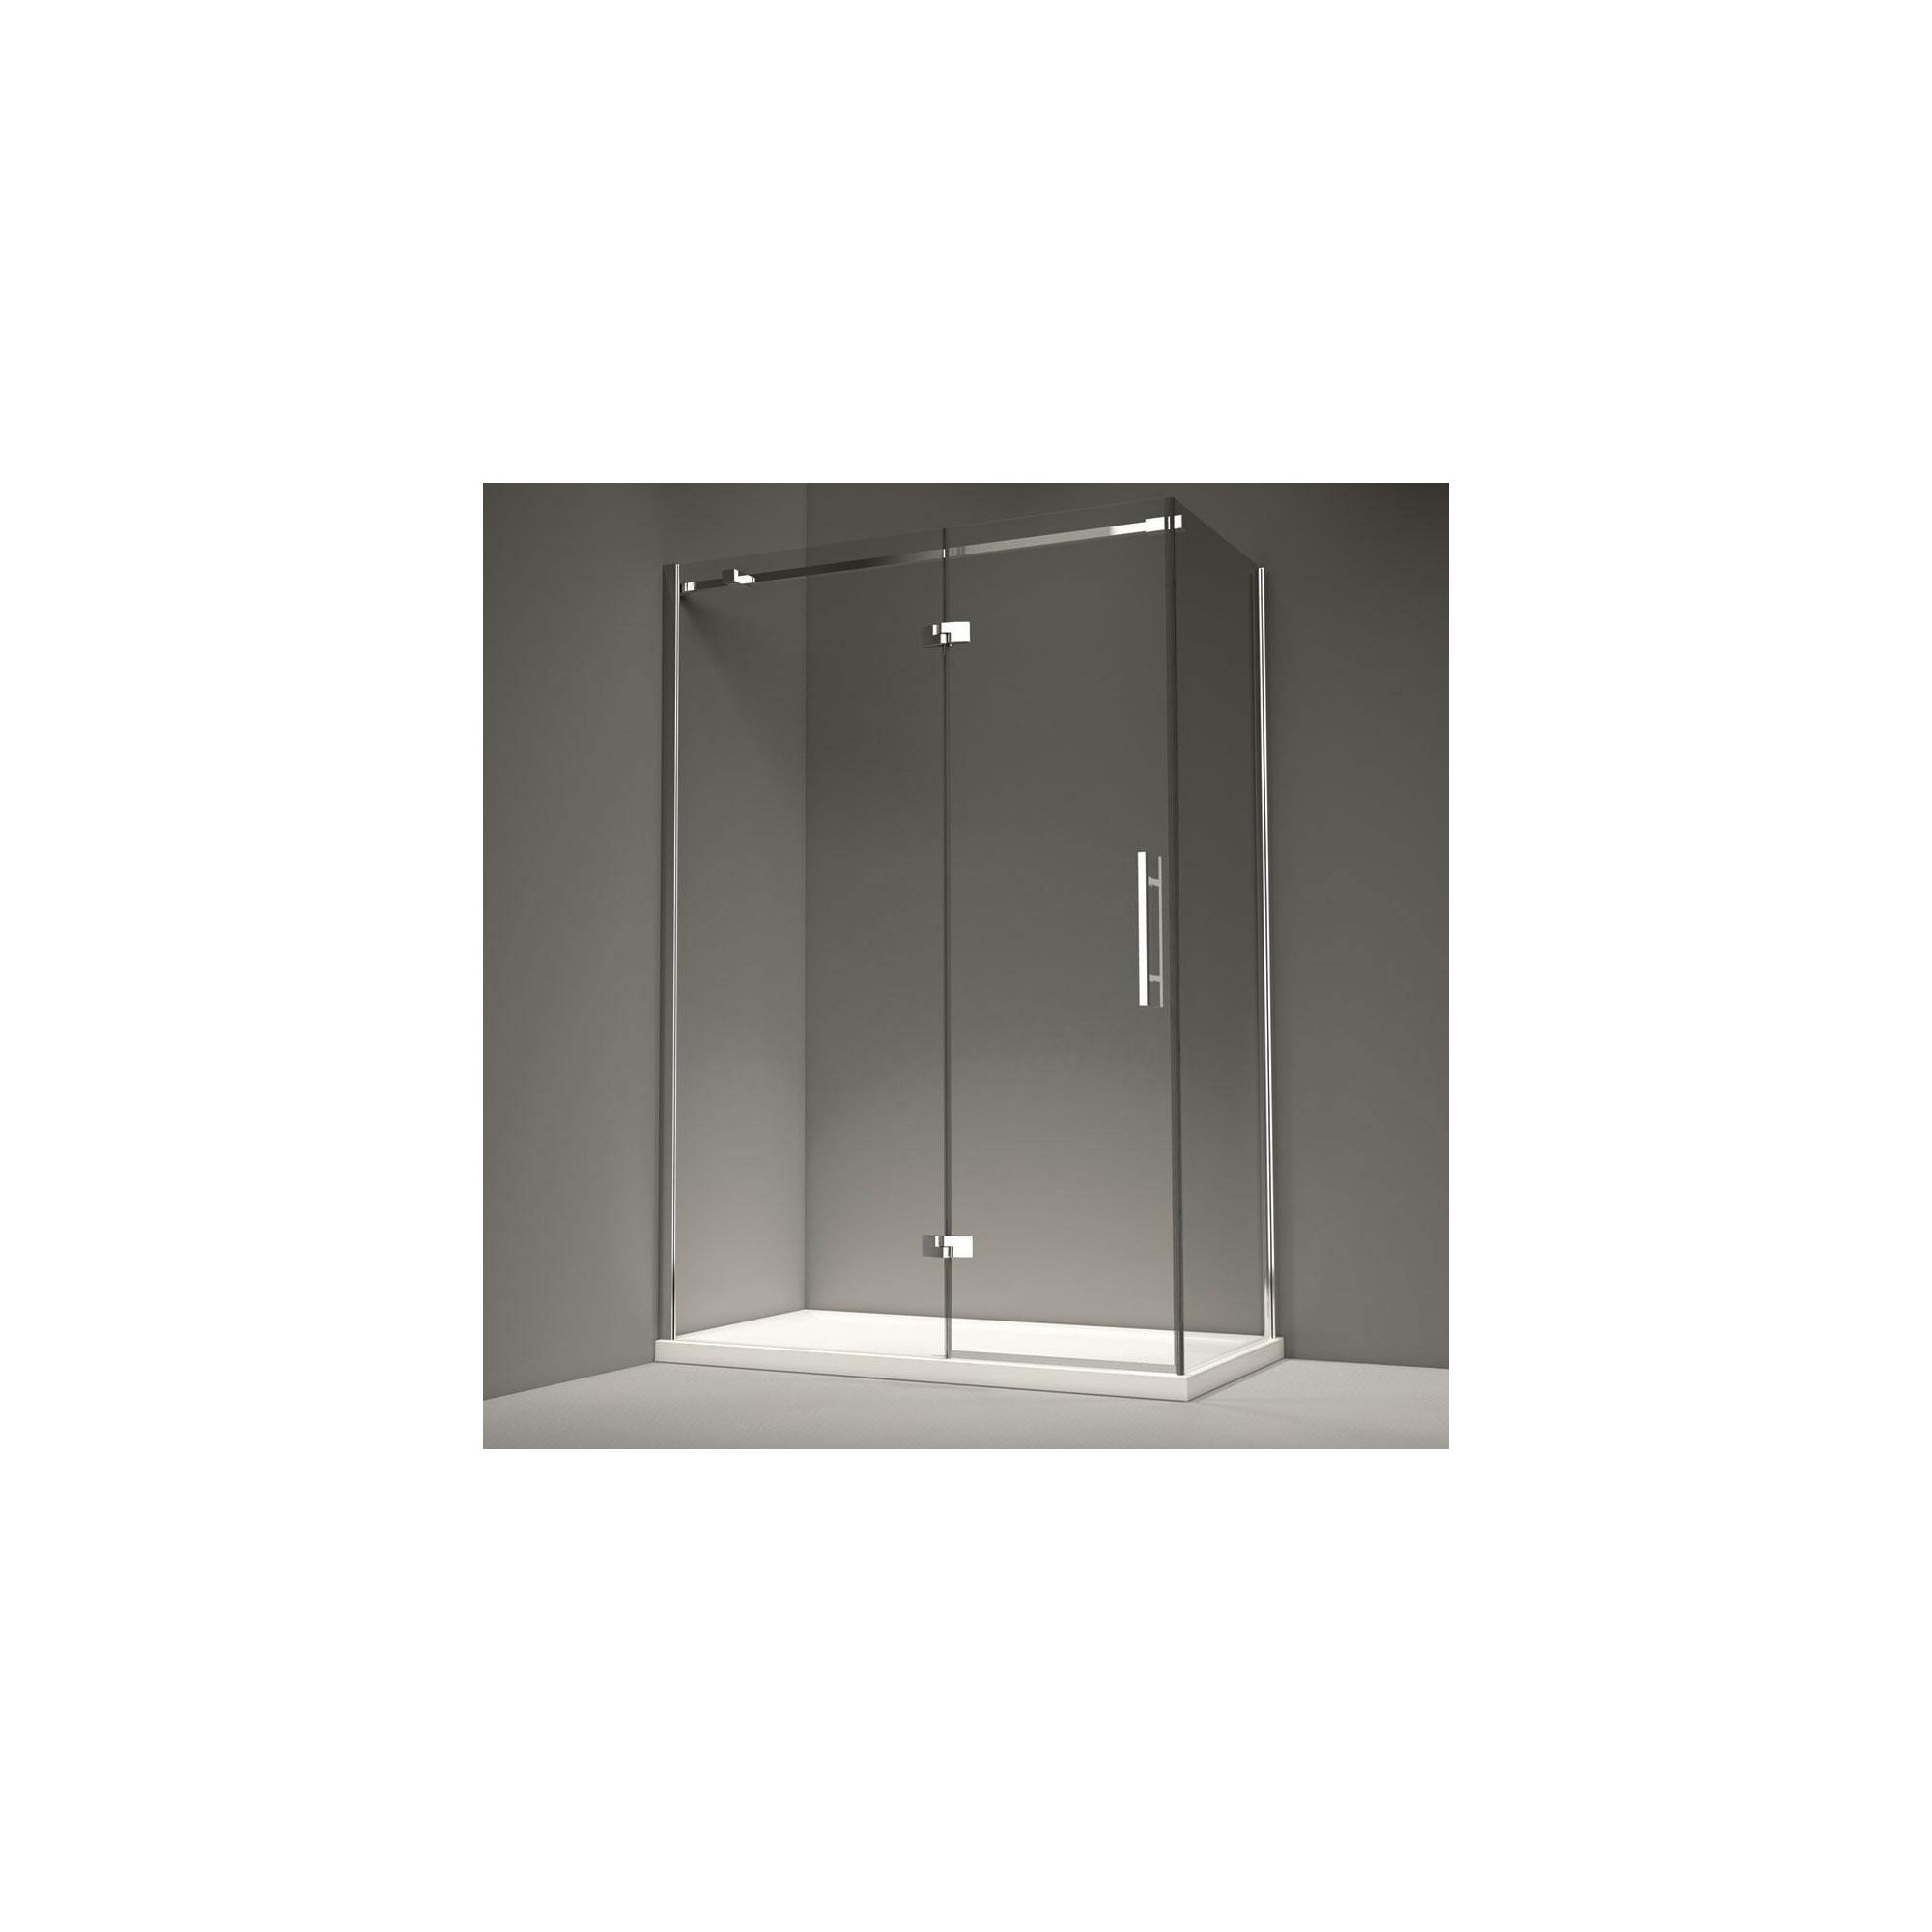 Merlyn Series 9 Inline Hinged Shower Door, 1100mm Wide, 8mm Glass, Left Handed at Tesco Direct